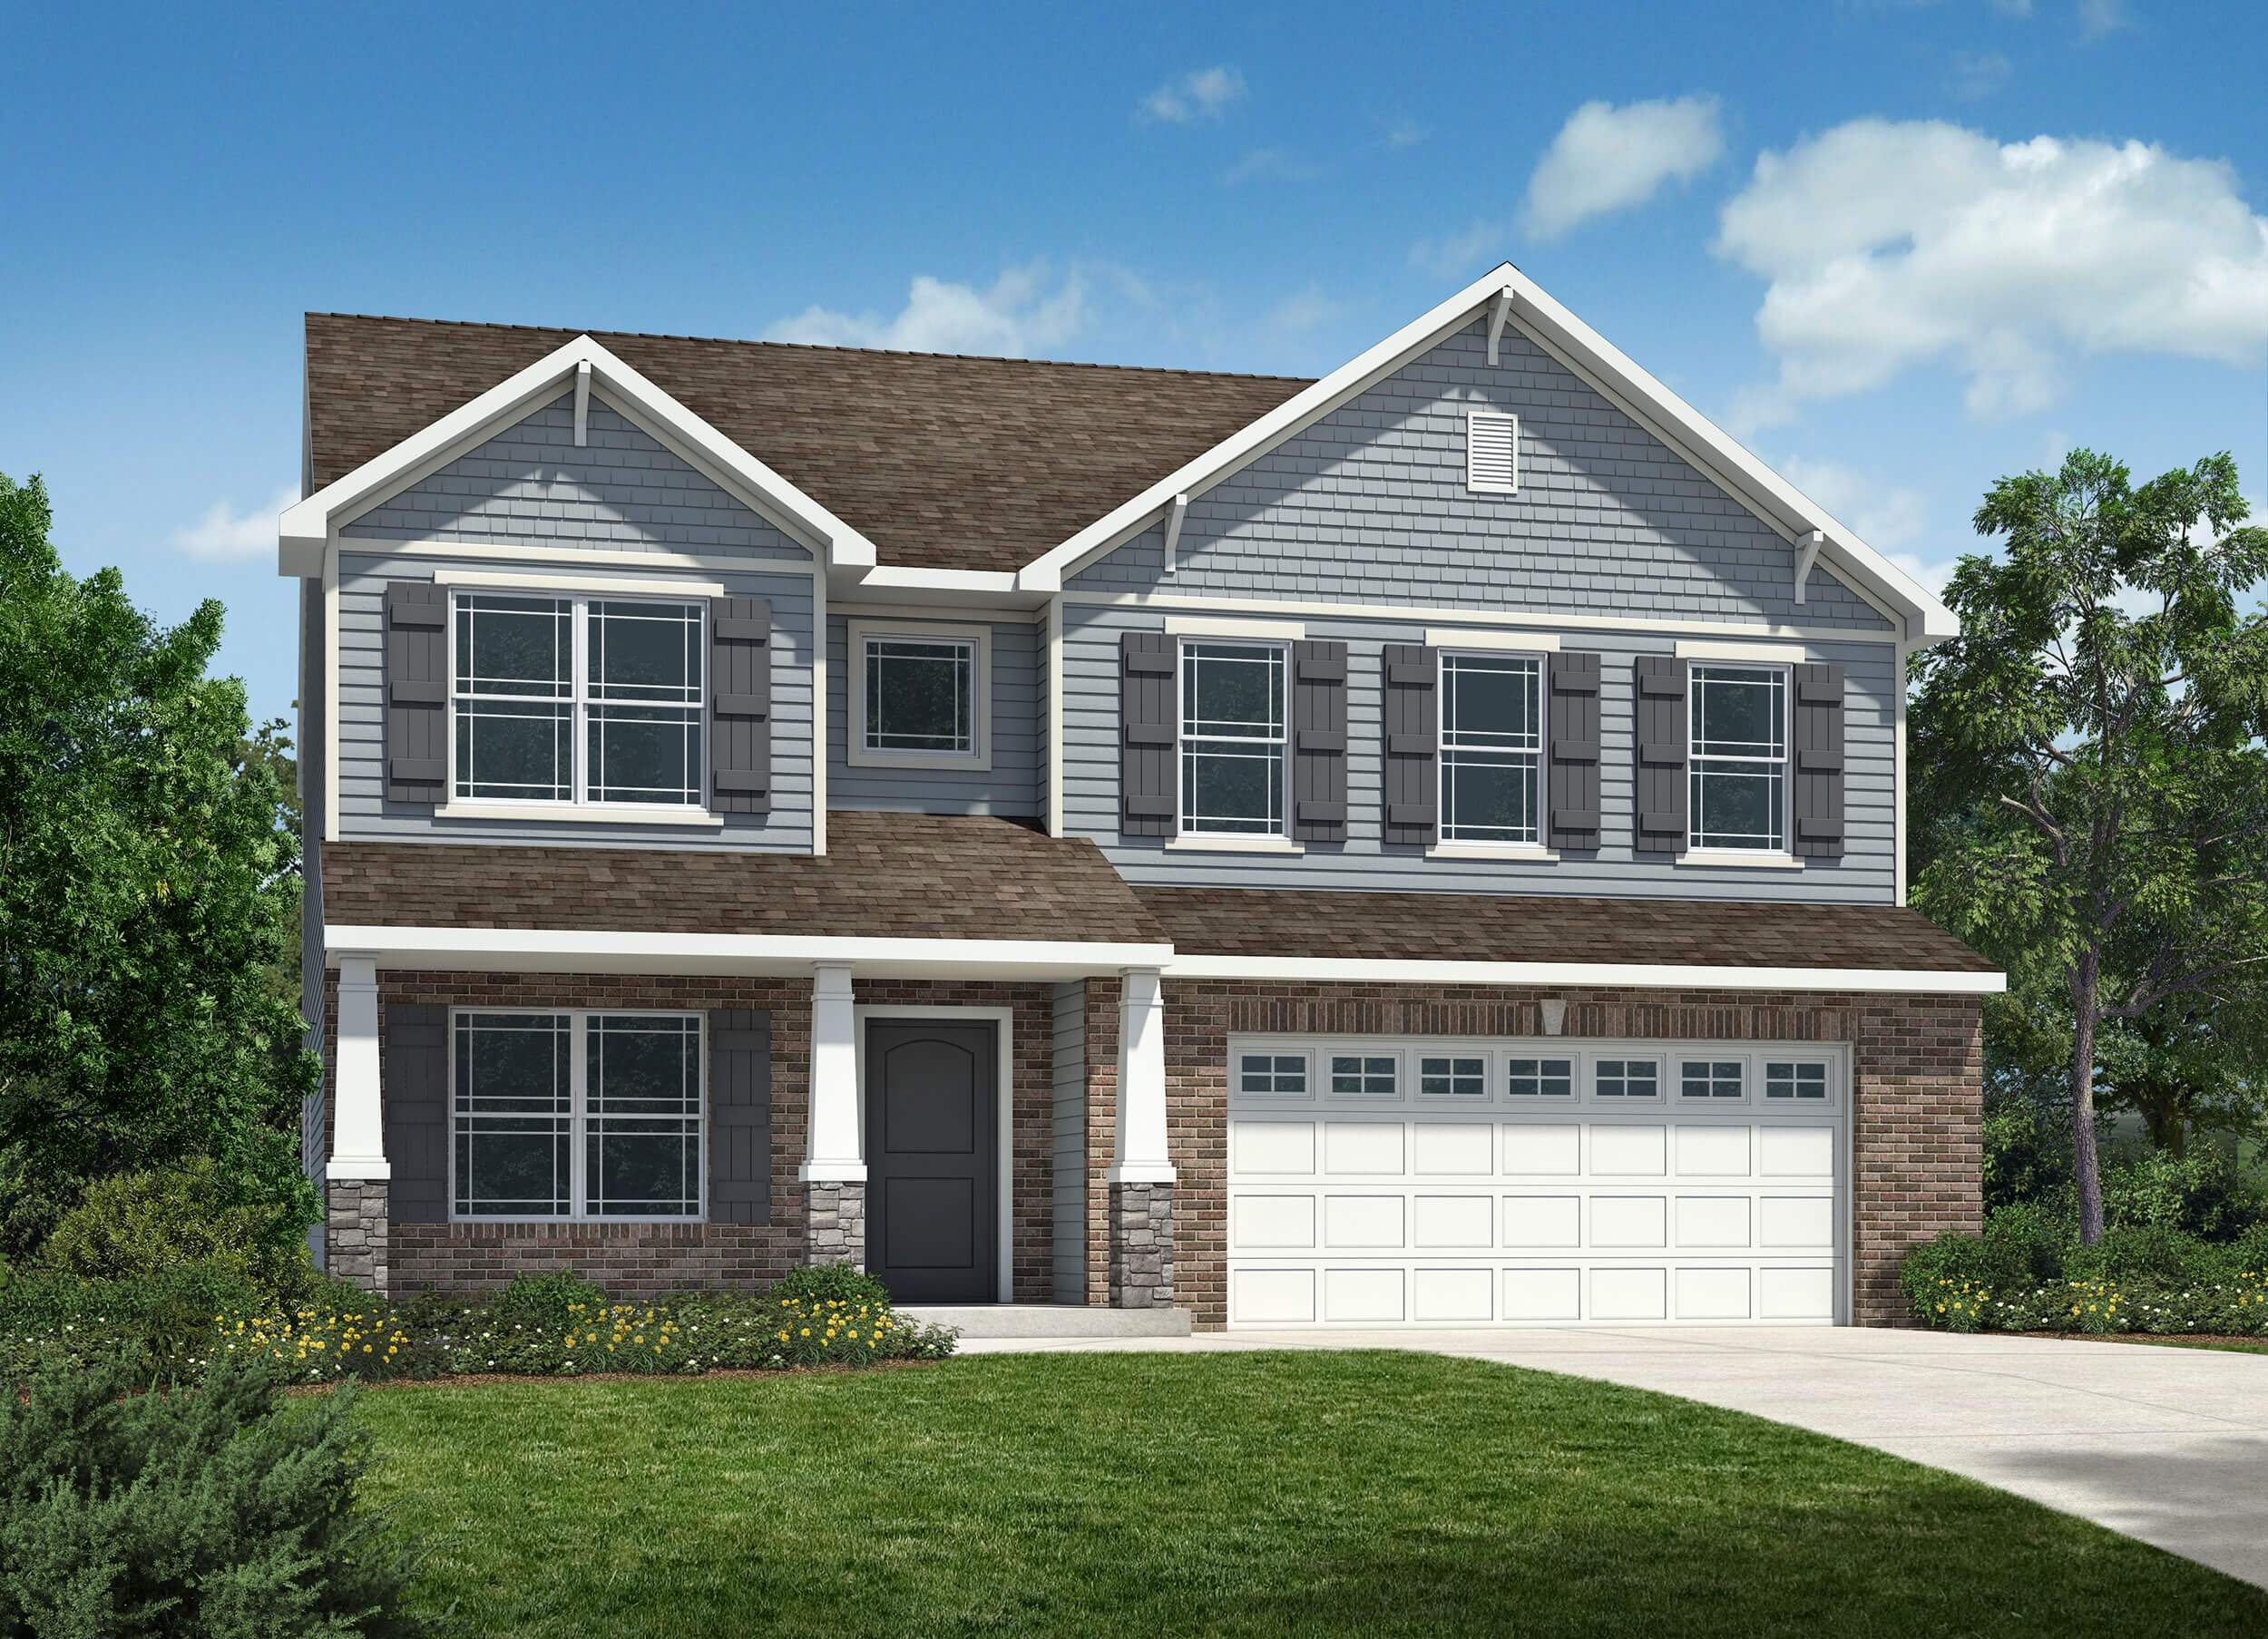 Westport homes of indianapolis westwood landing west for Houses for sale westport